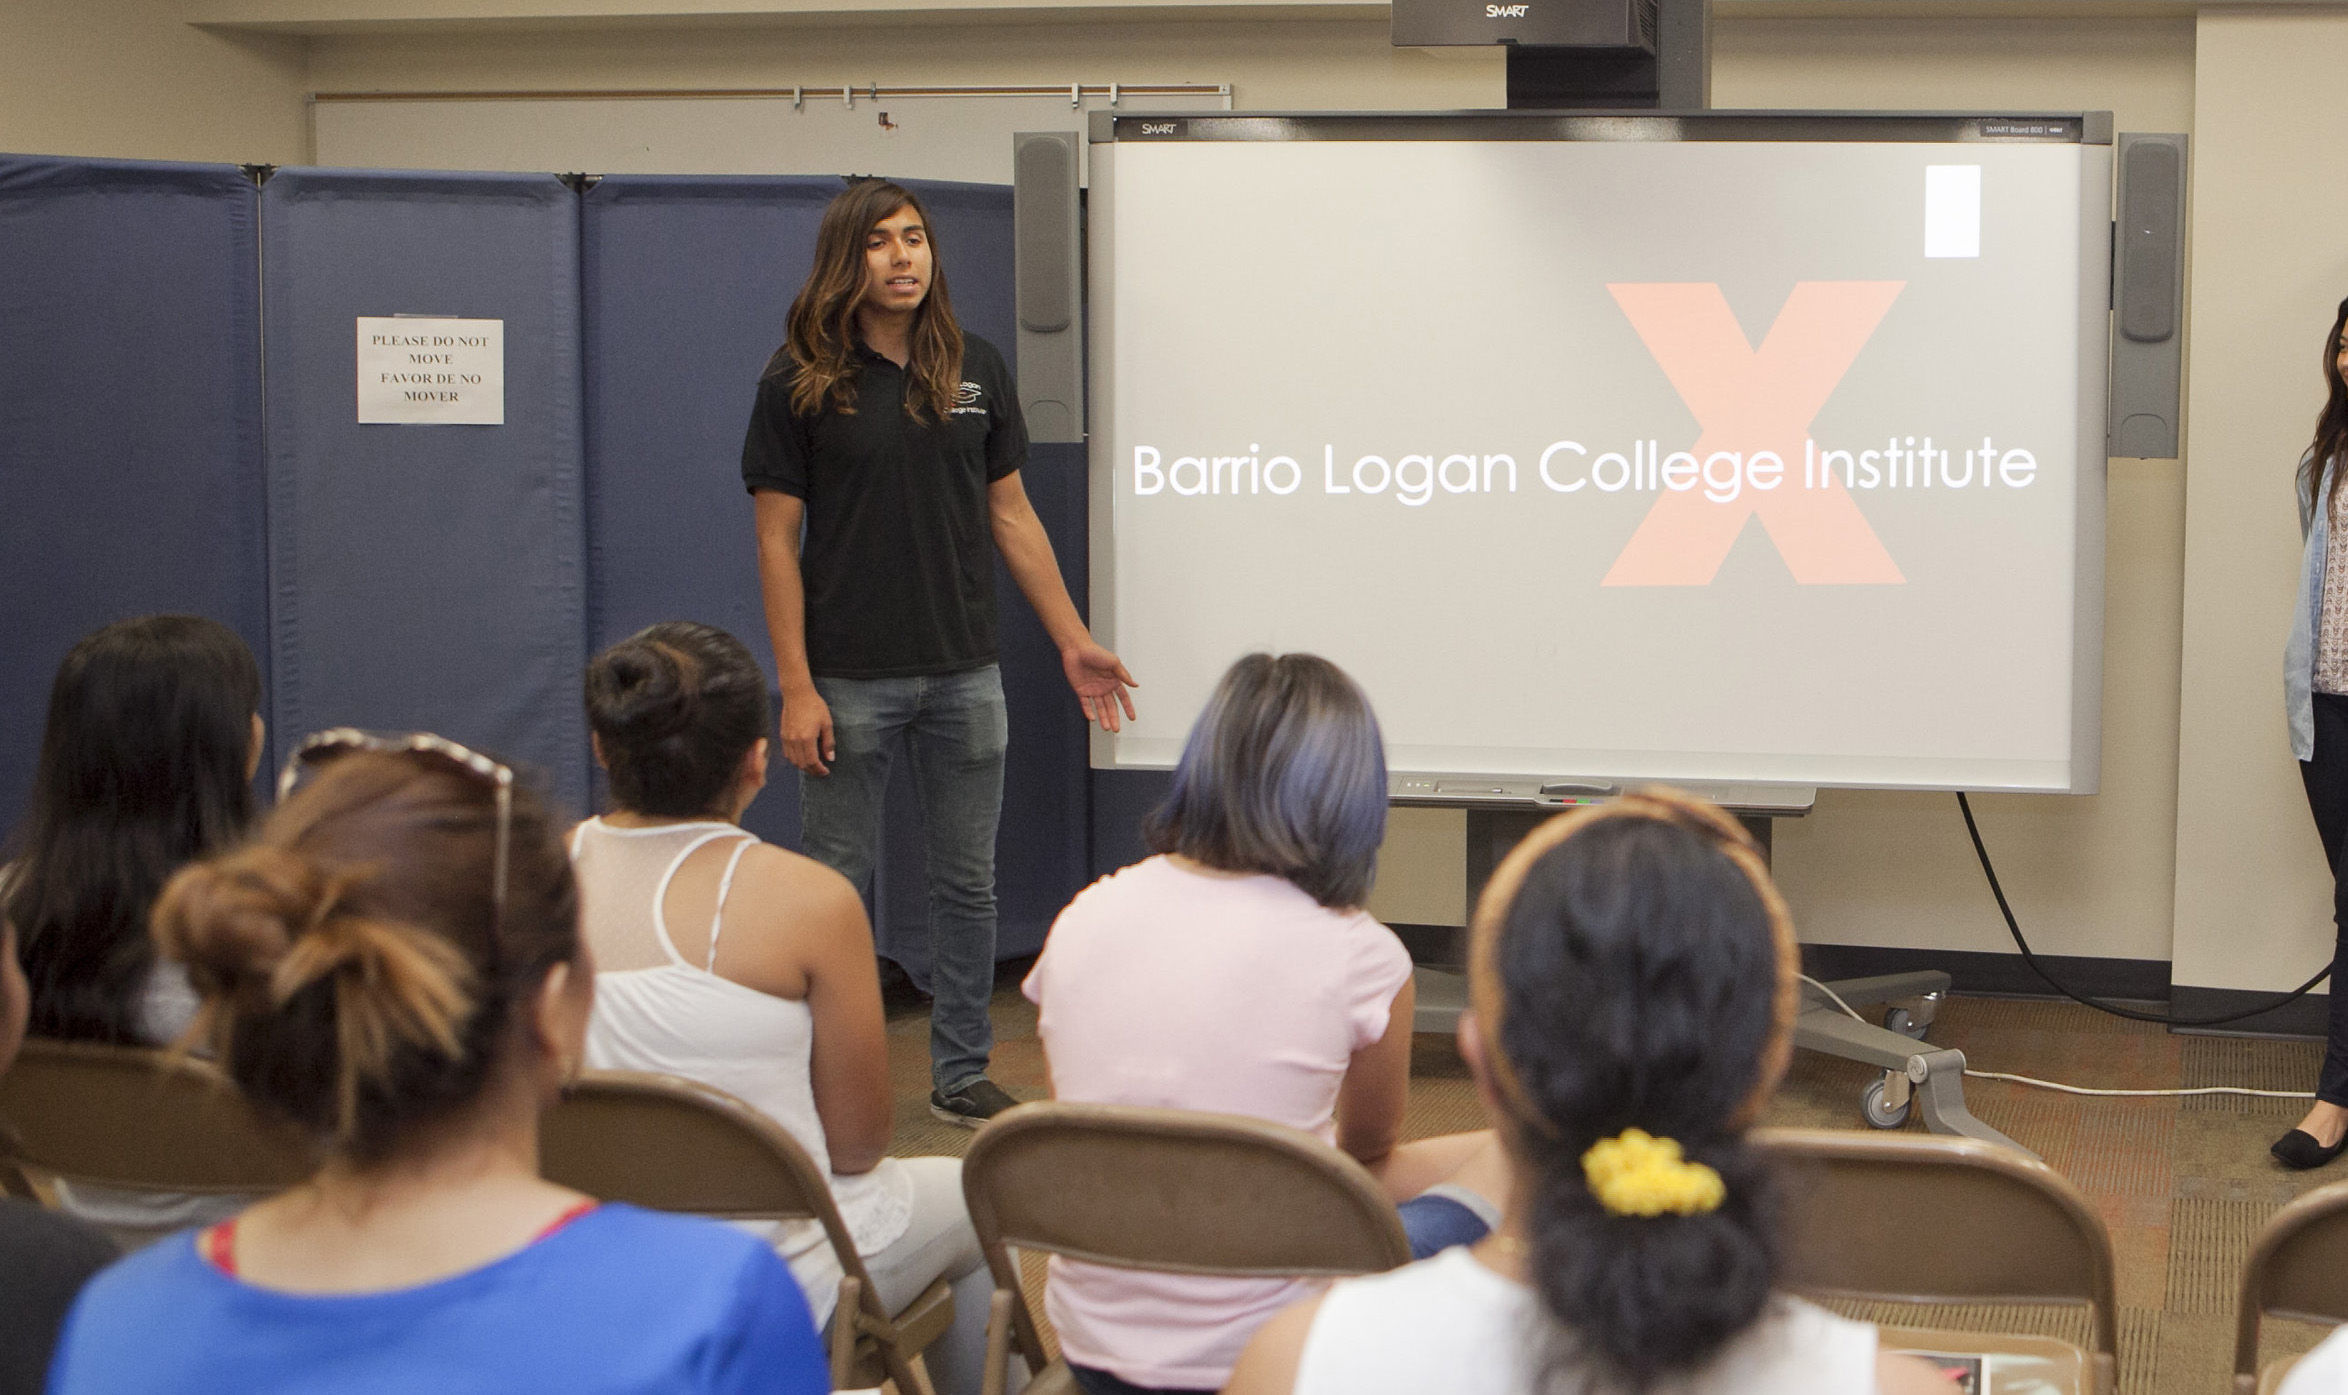 Francisco Martinez presenting to Barrio Logan College Institute students